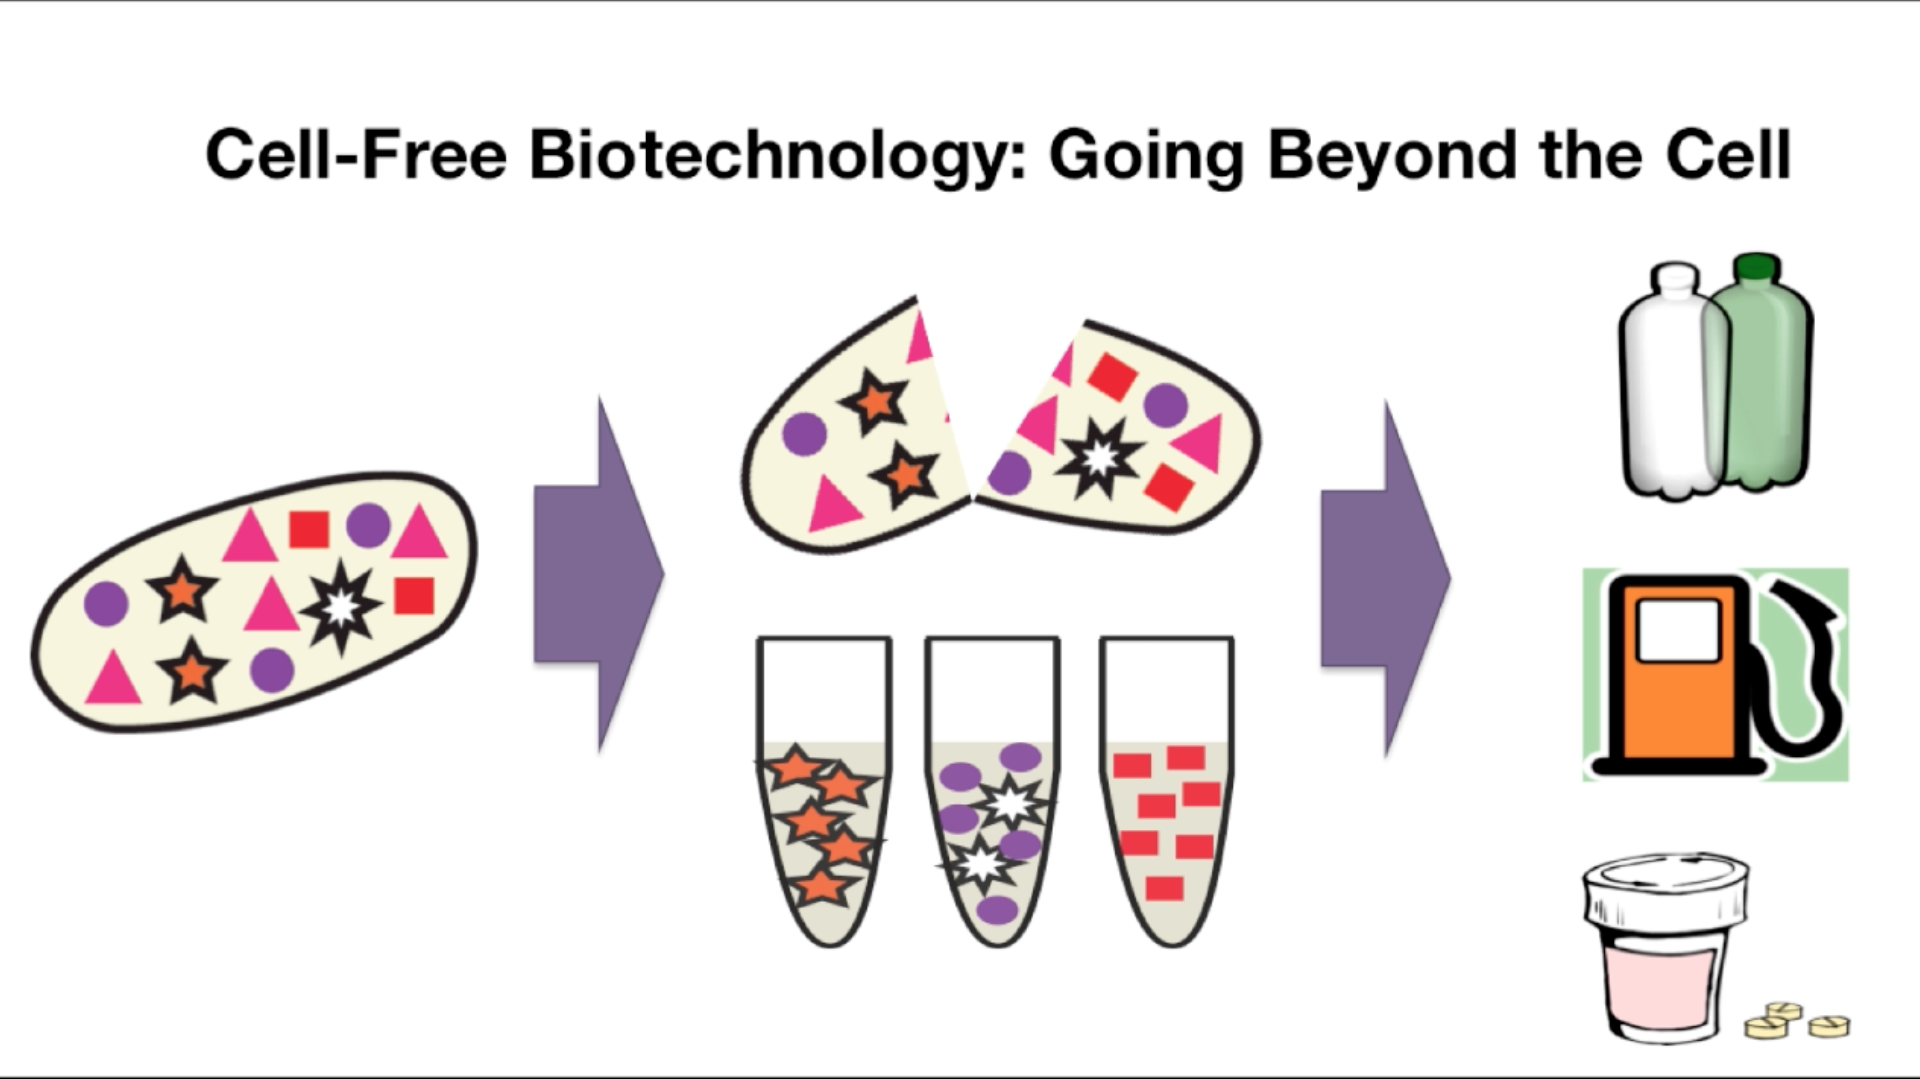 Cell-free Biotechnology: Going Beyond the Cell